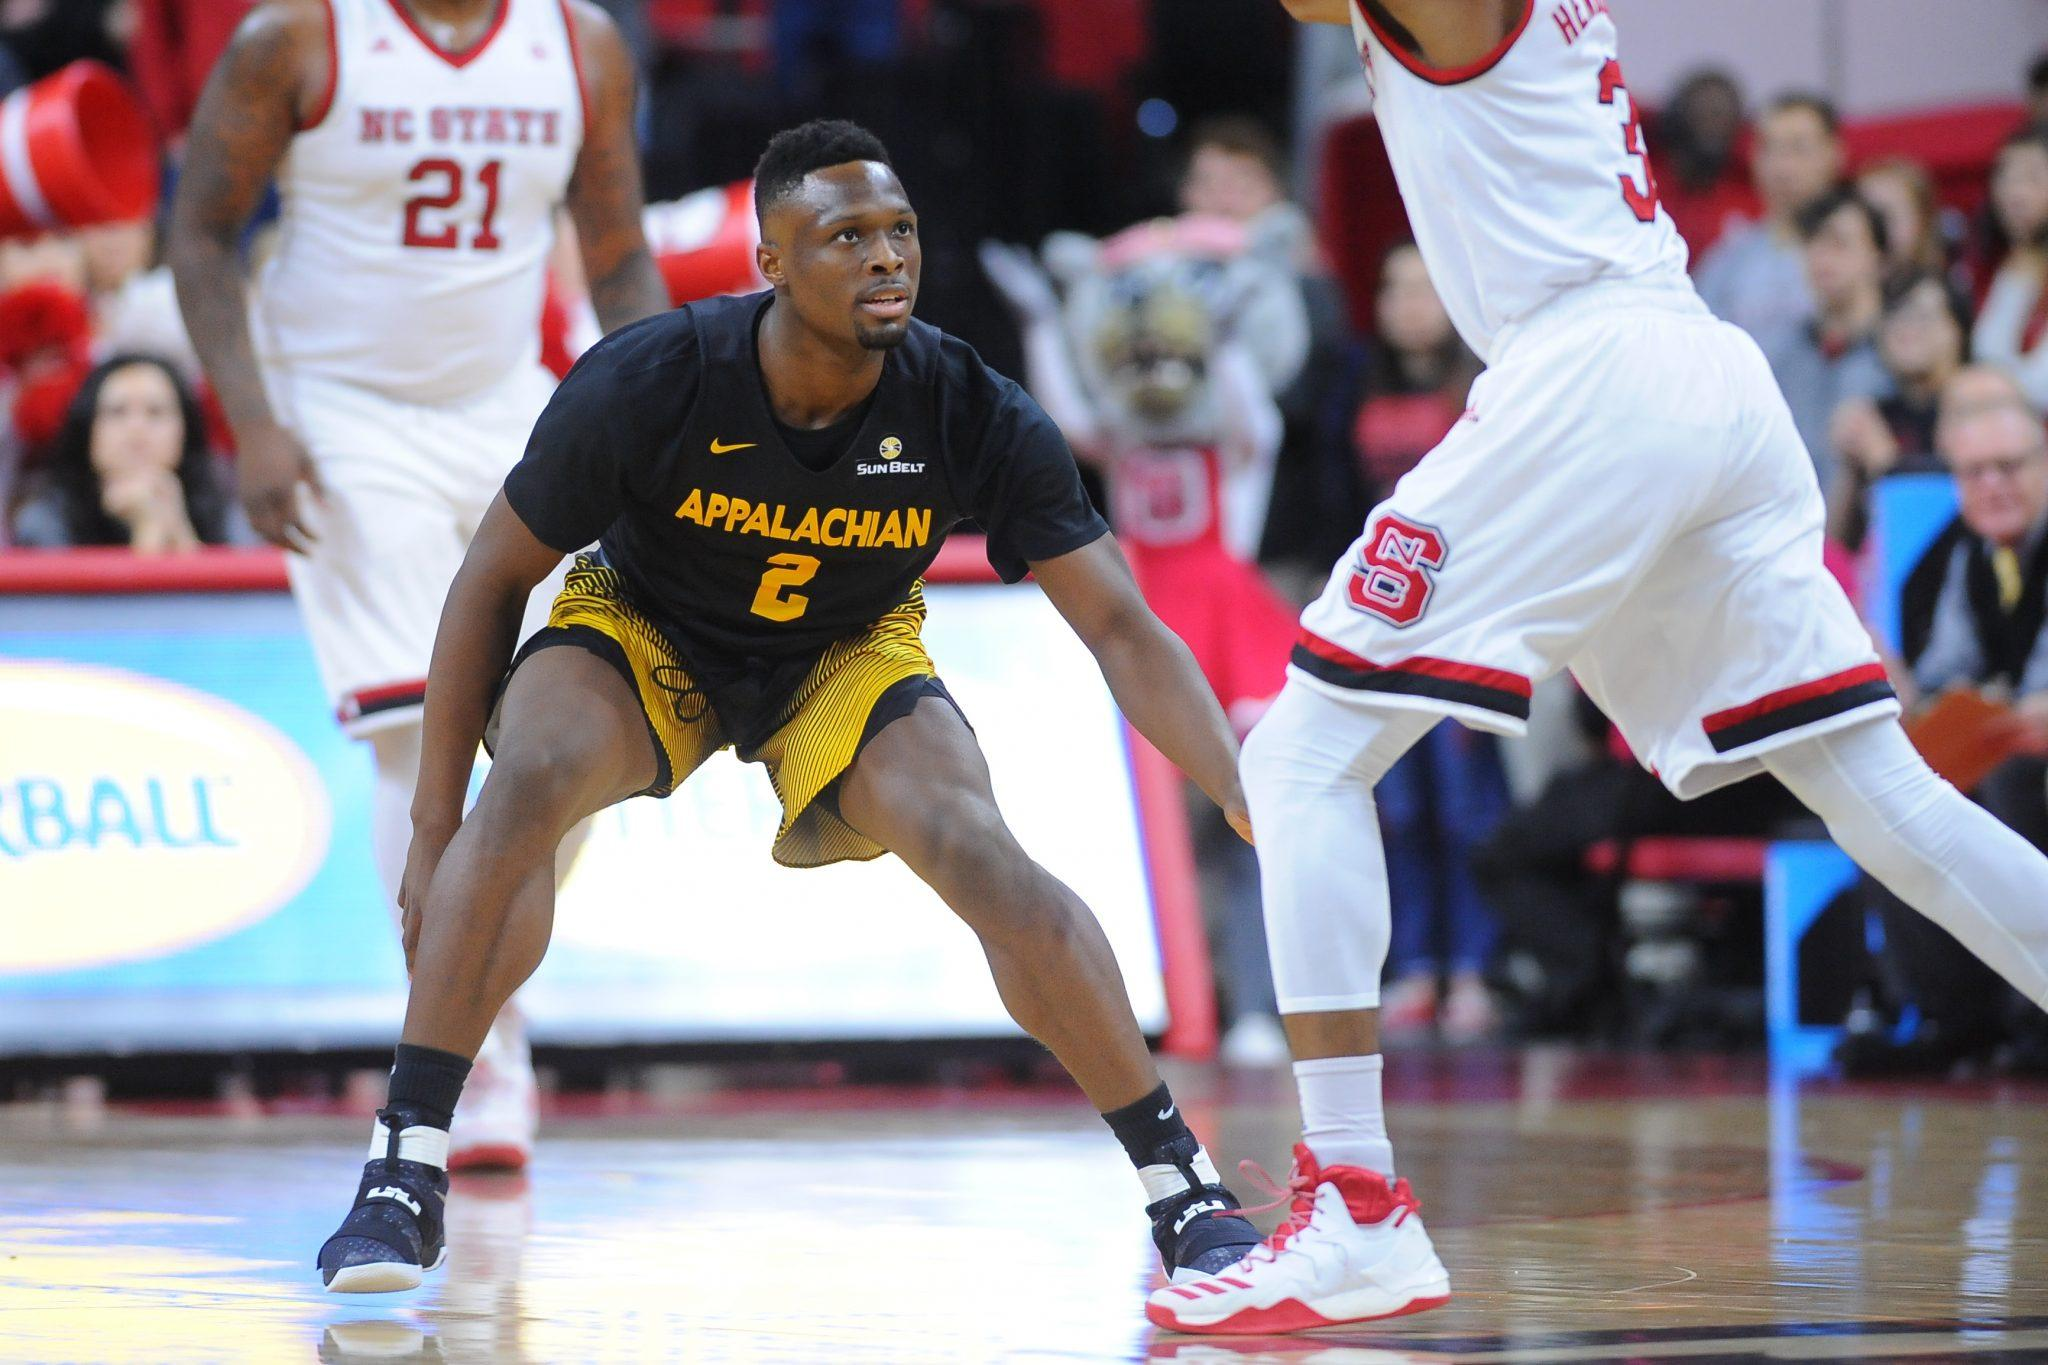 Appalachian State takes on NC State in non-conference men's basketball action at PNC Arena on Thursday, December 15, 2016 in Raleigh, North Carolina. Photo courtesy: App State Athletic/ Tim Cowie